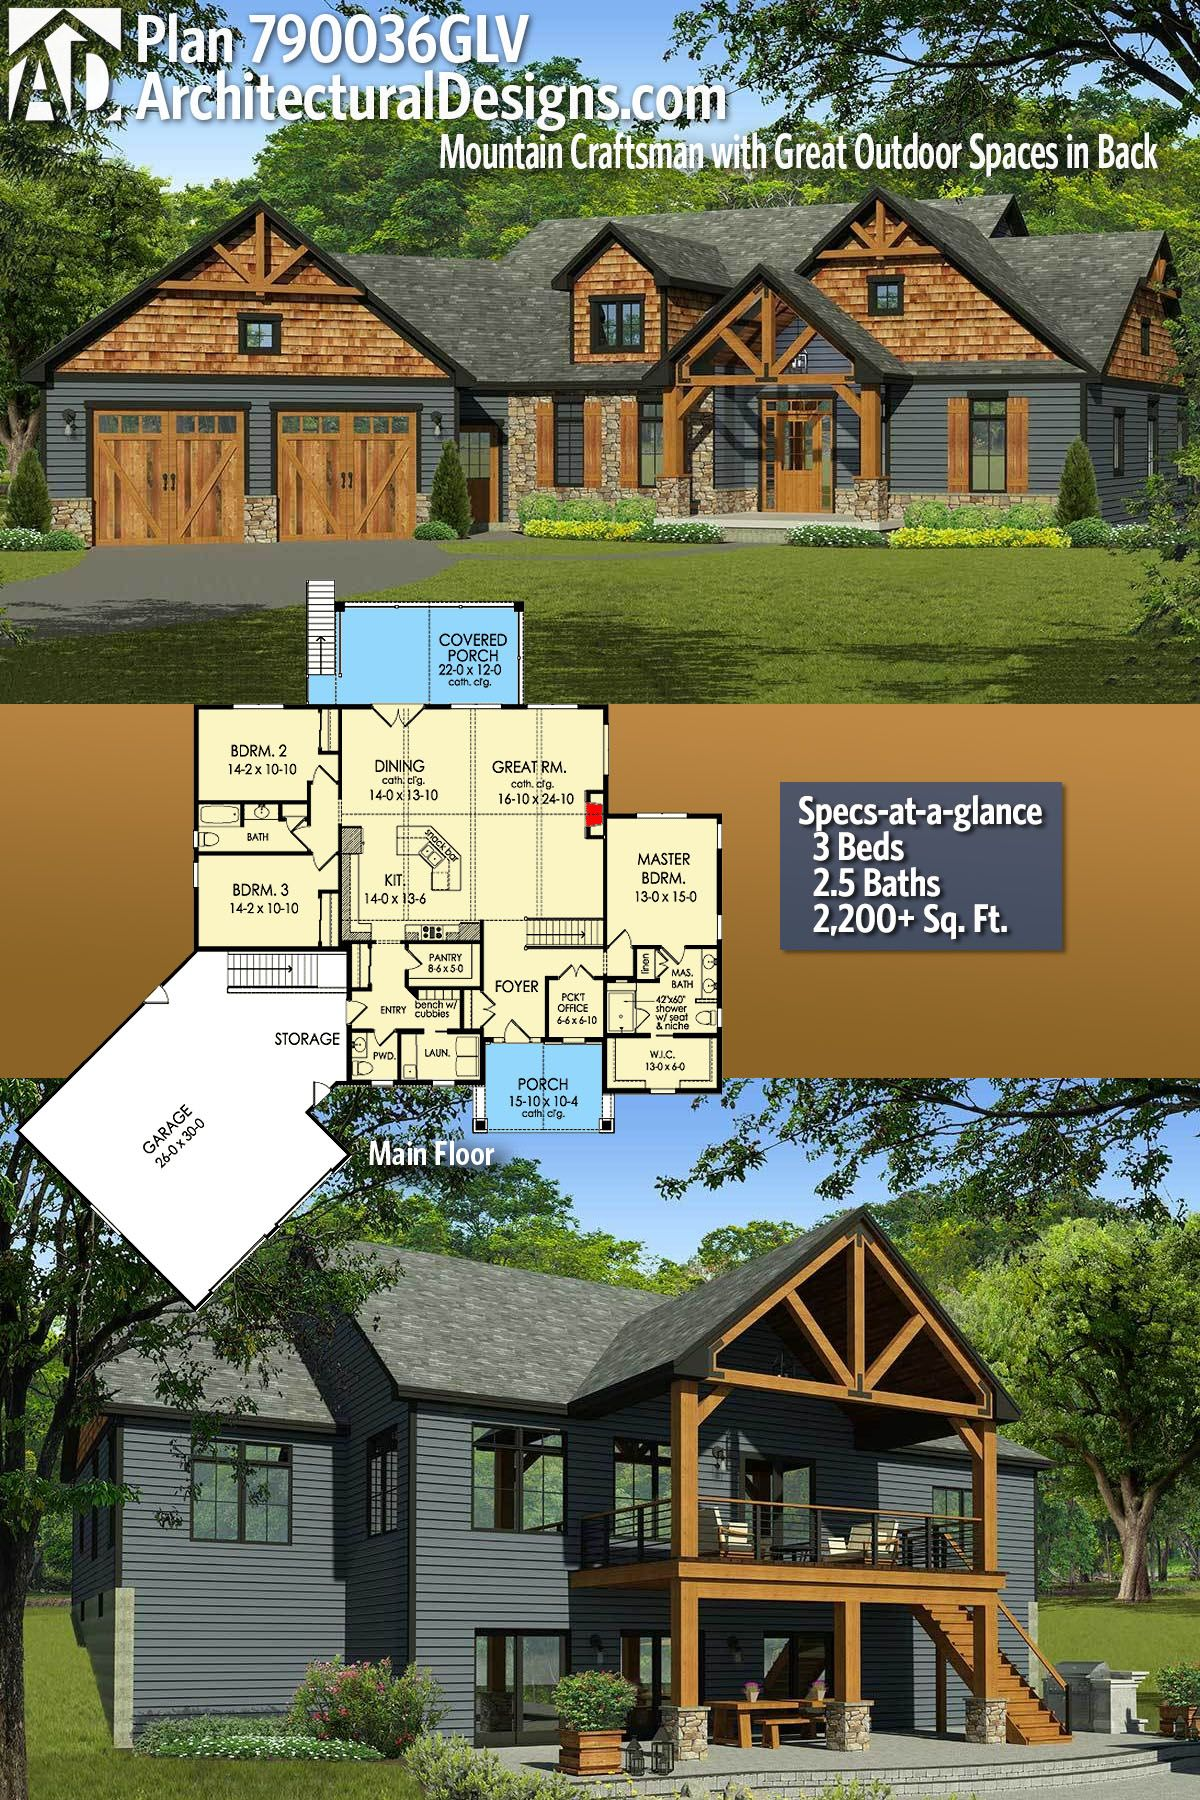 Plan 790036glv 3 Bed Mountain Craftsman With Great Outdoor Spaces In Back Craftsman House Plans Lake House Plans New House Plans